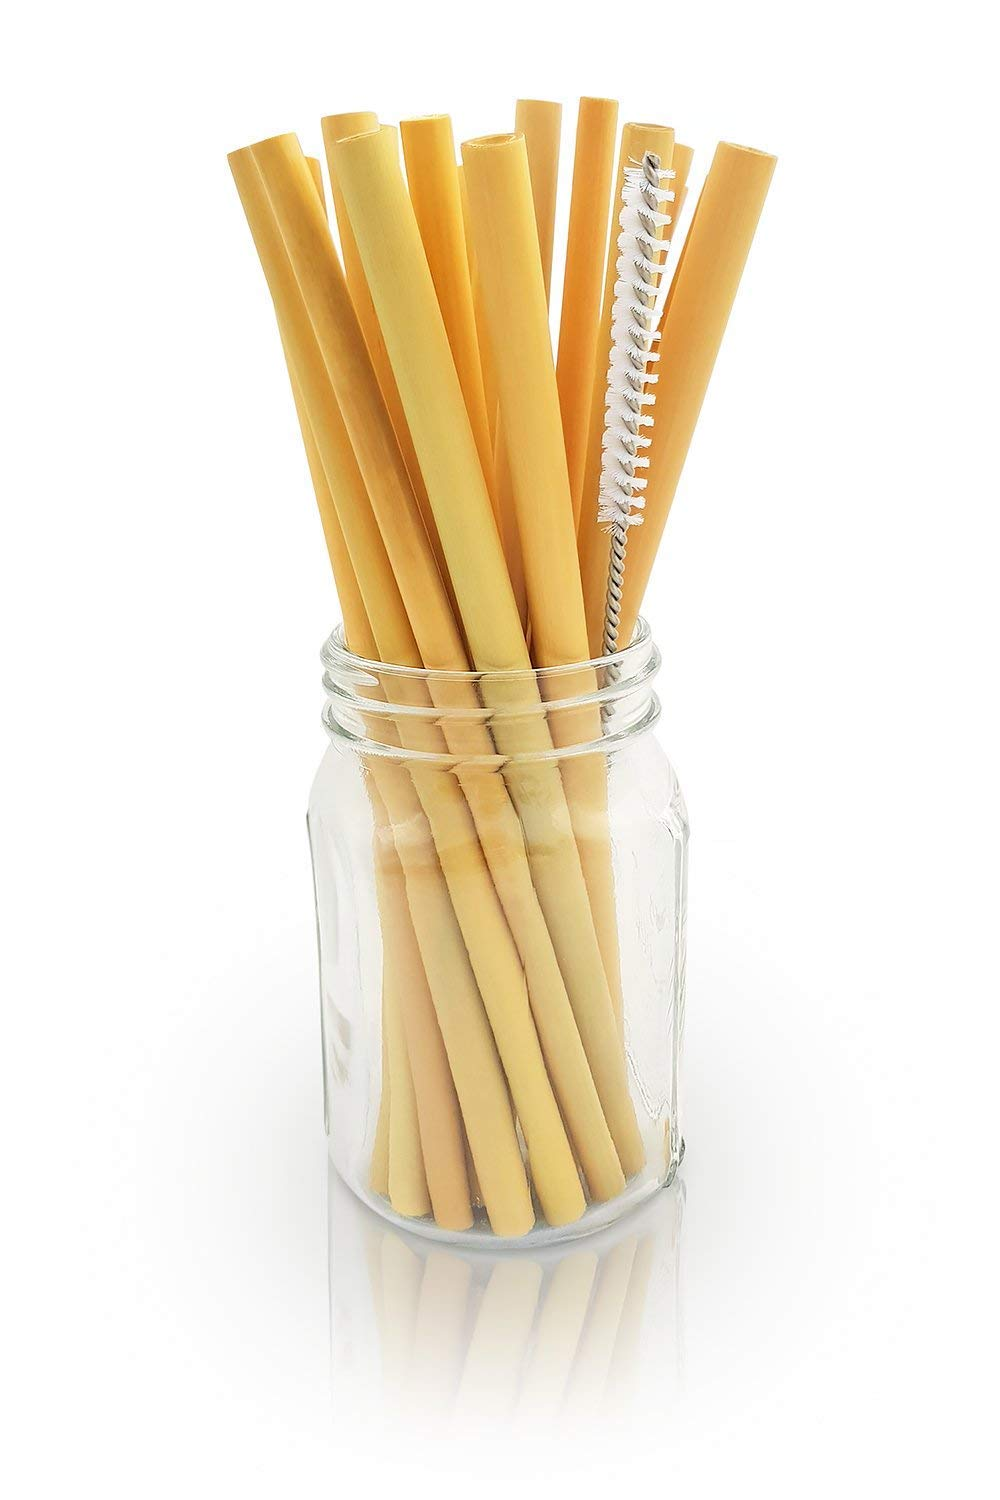 Organic Bamboo Drinking Straws Eco-friendly Sustainable Reusable Handcrafted Natural Washable Straws Plastic Straw Alternative Biodegradable Including Straw Cleaning Brush